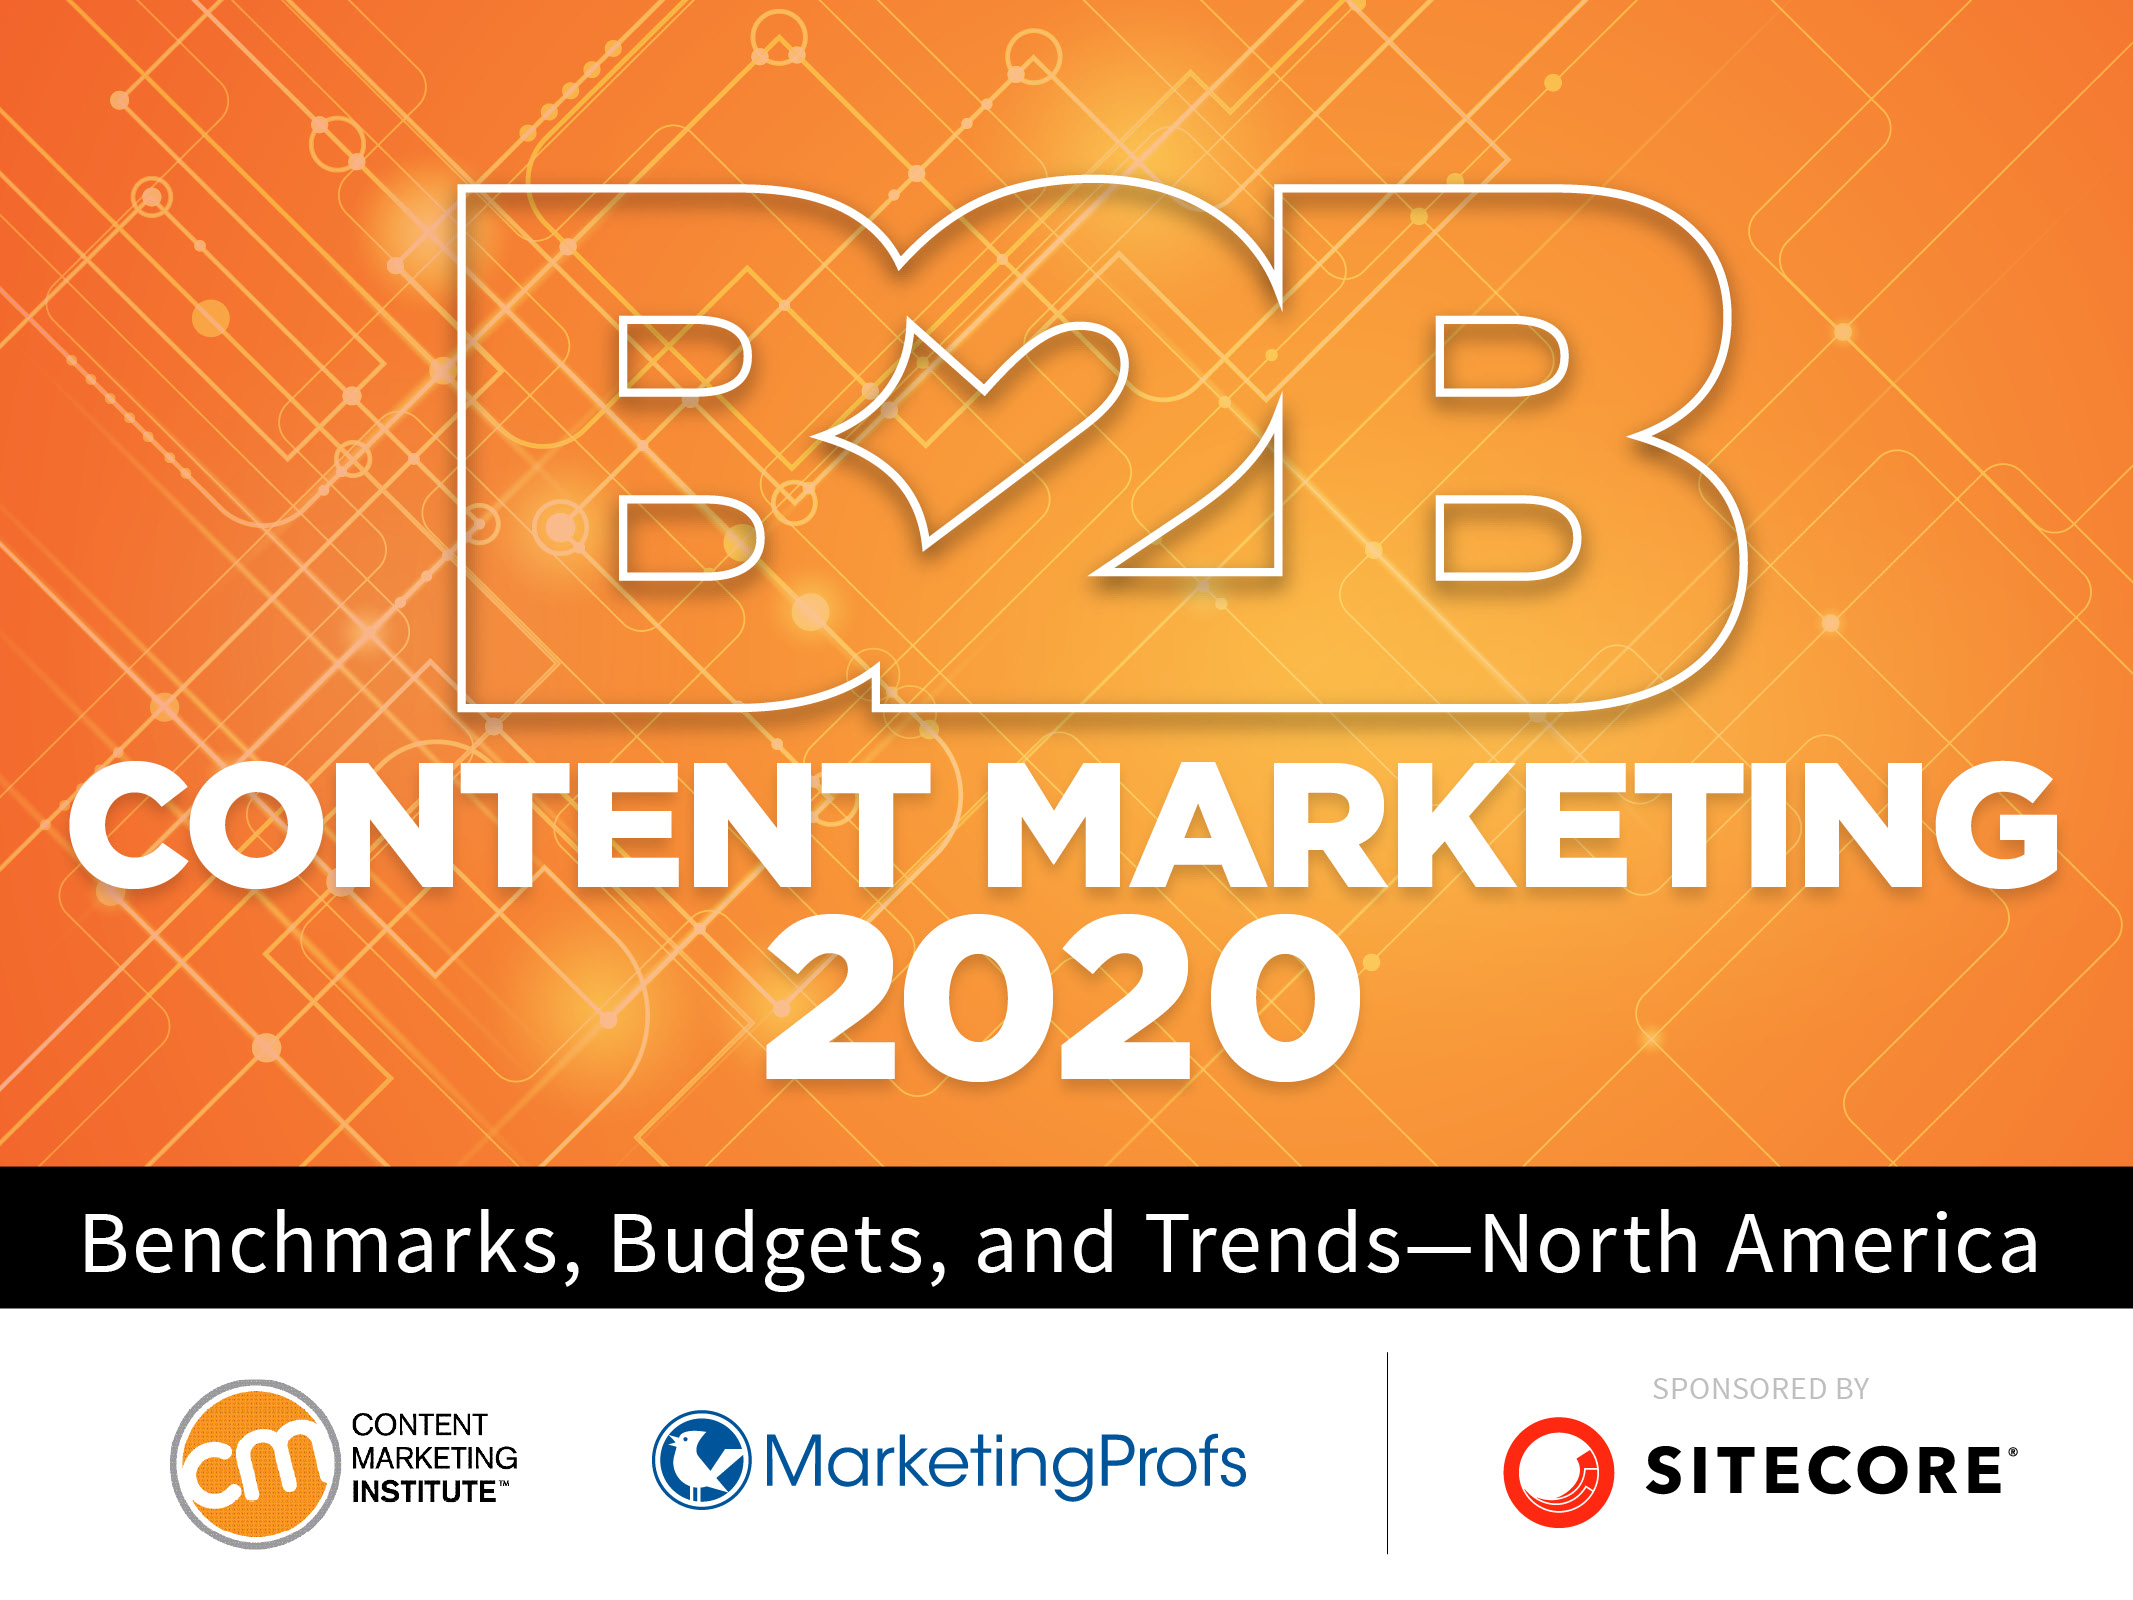 B2b Content Marketing In 2020 Research